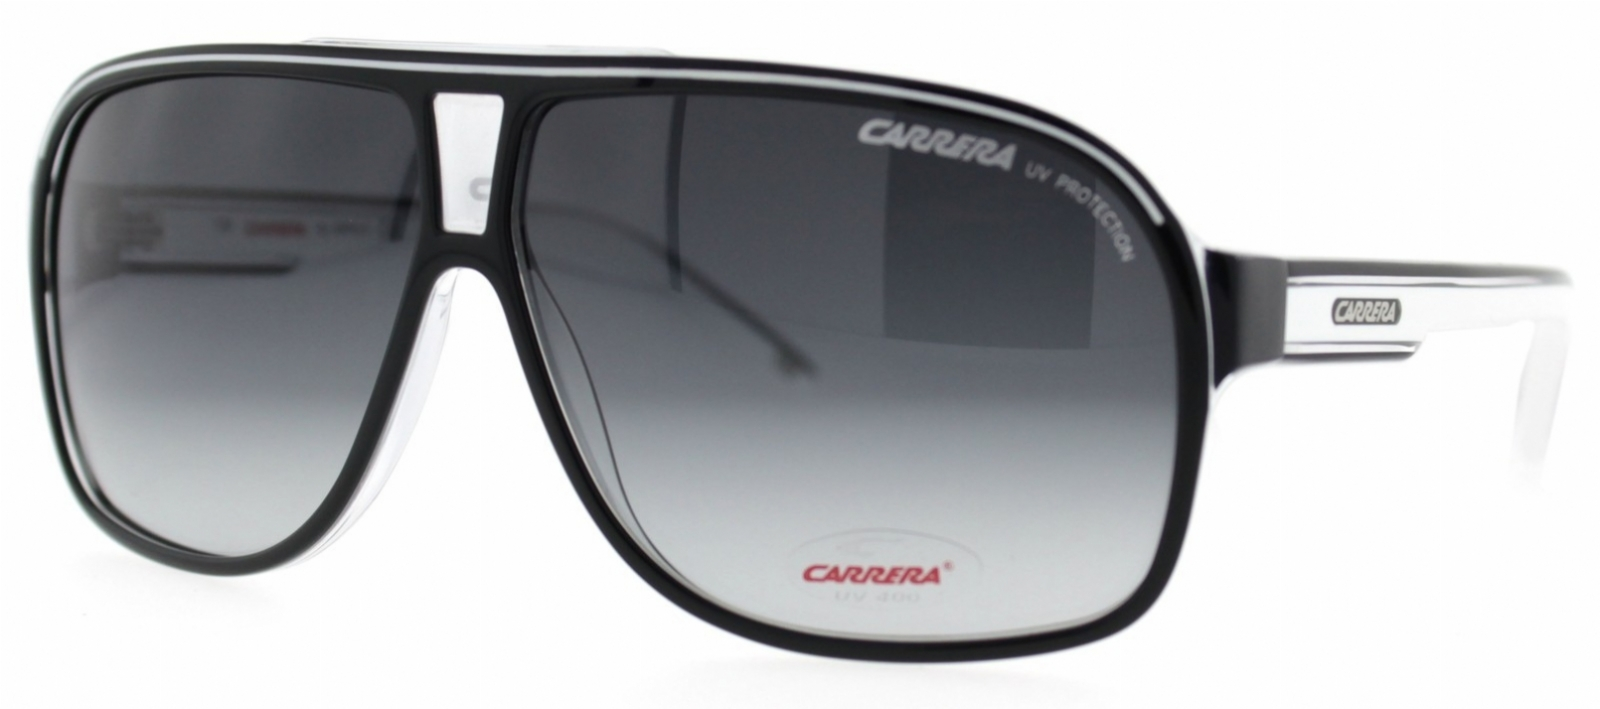 carrera grand prix 2 s sunglasses. Black Bedroom Furniture Sets. Home Design Ideas